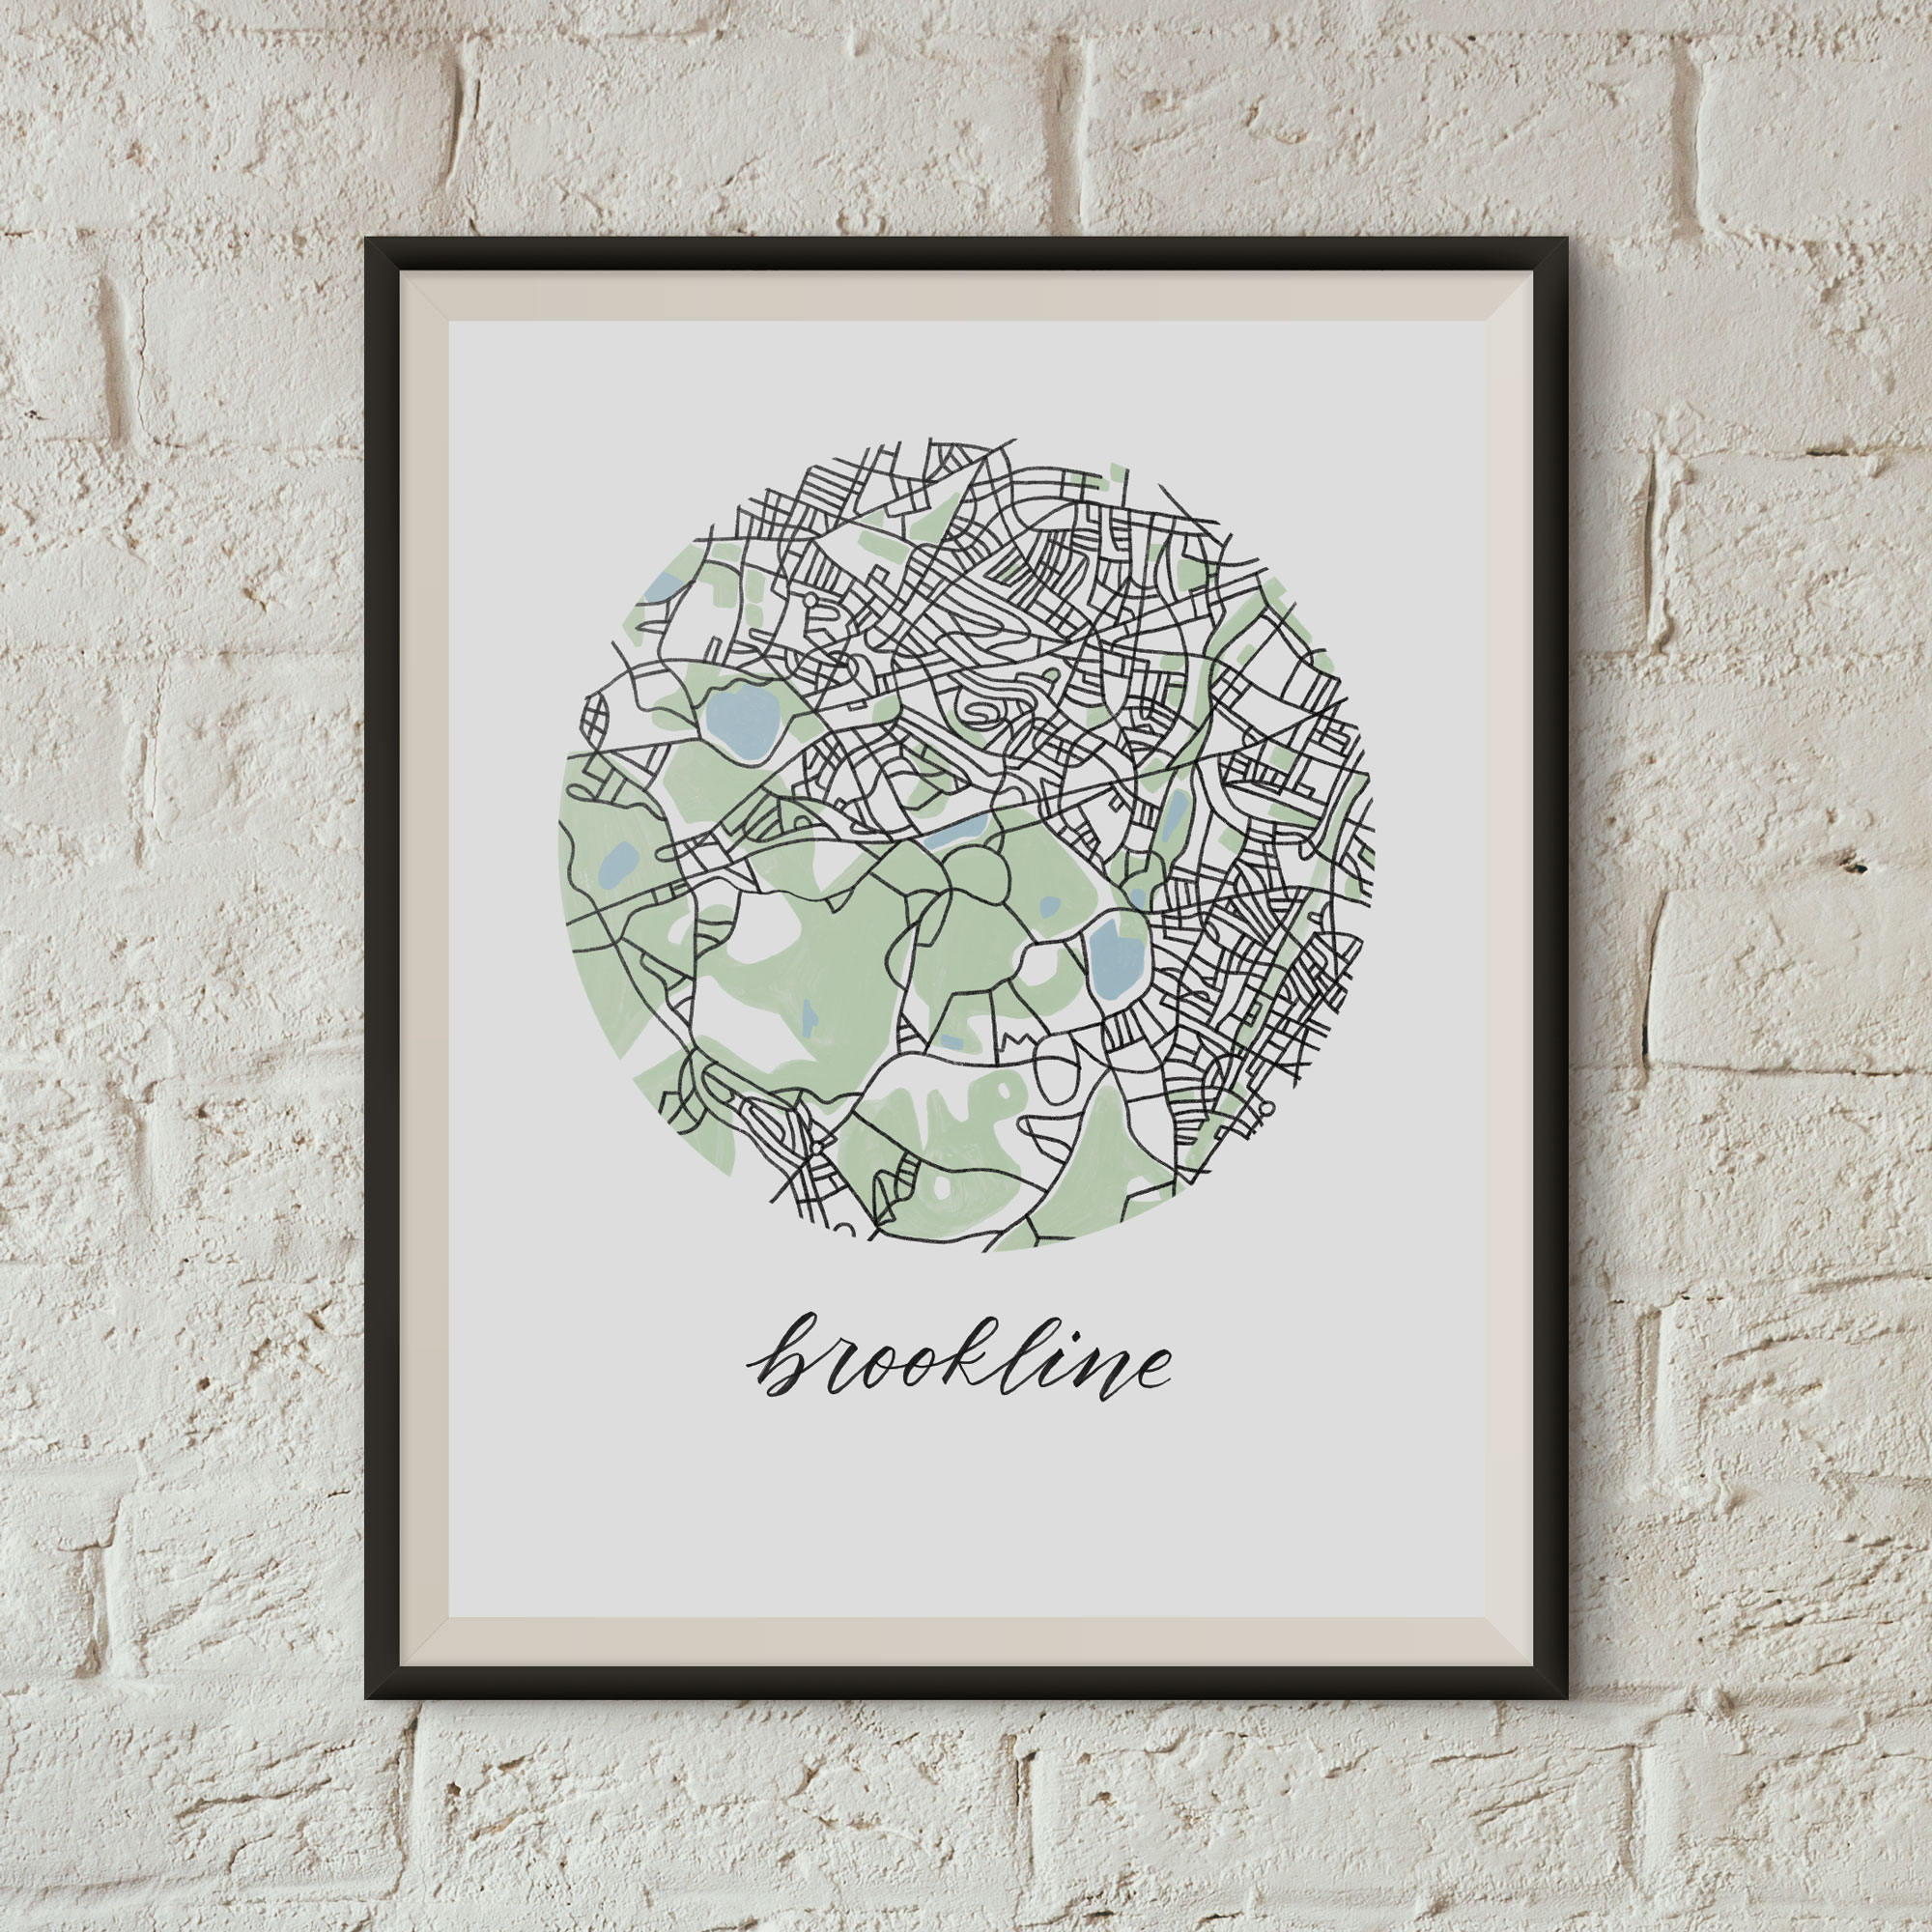 Brookline, Boston Map Print framed on a white brick wall